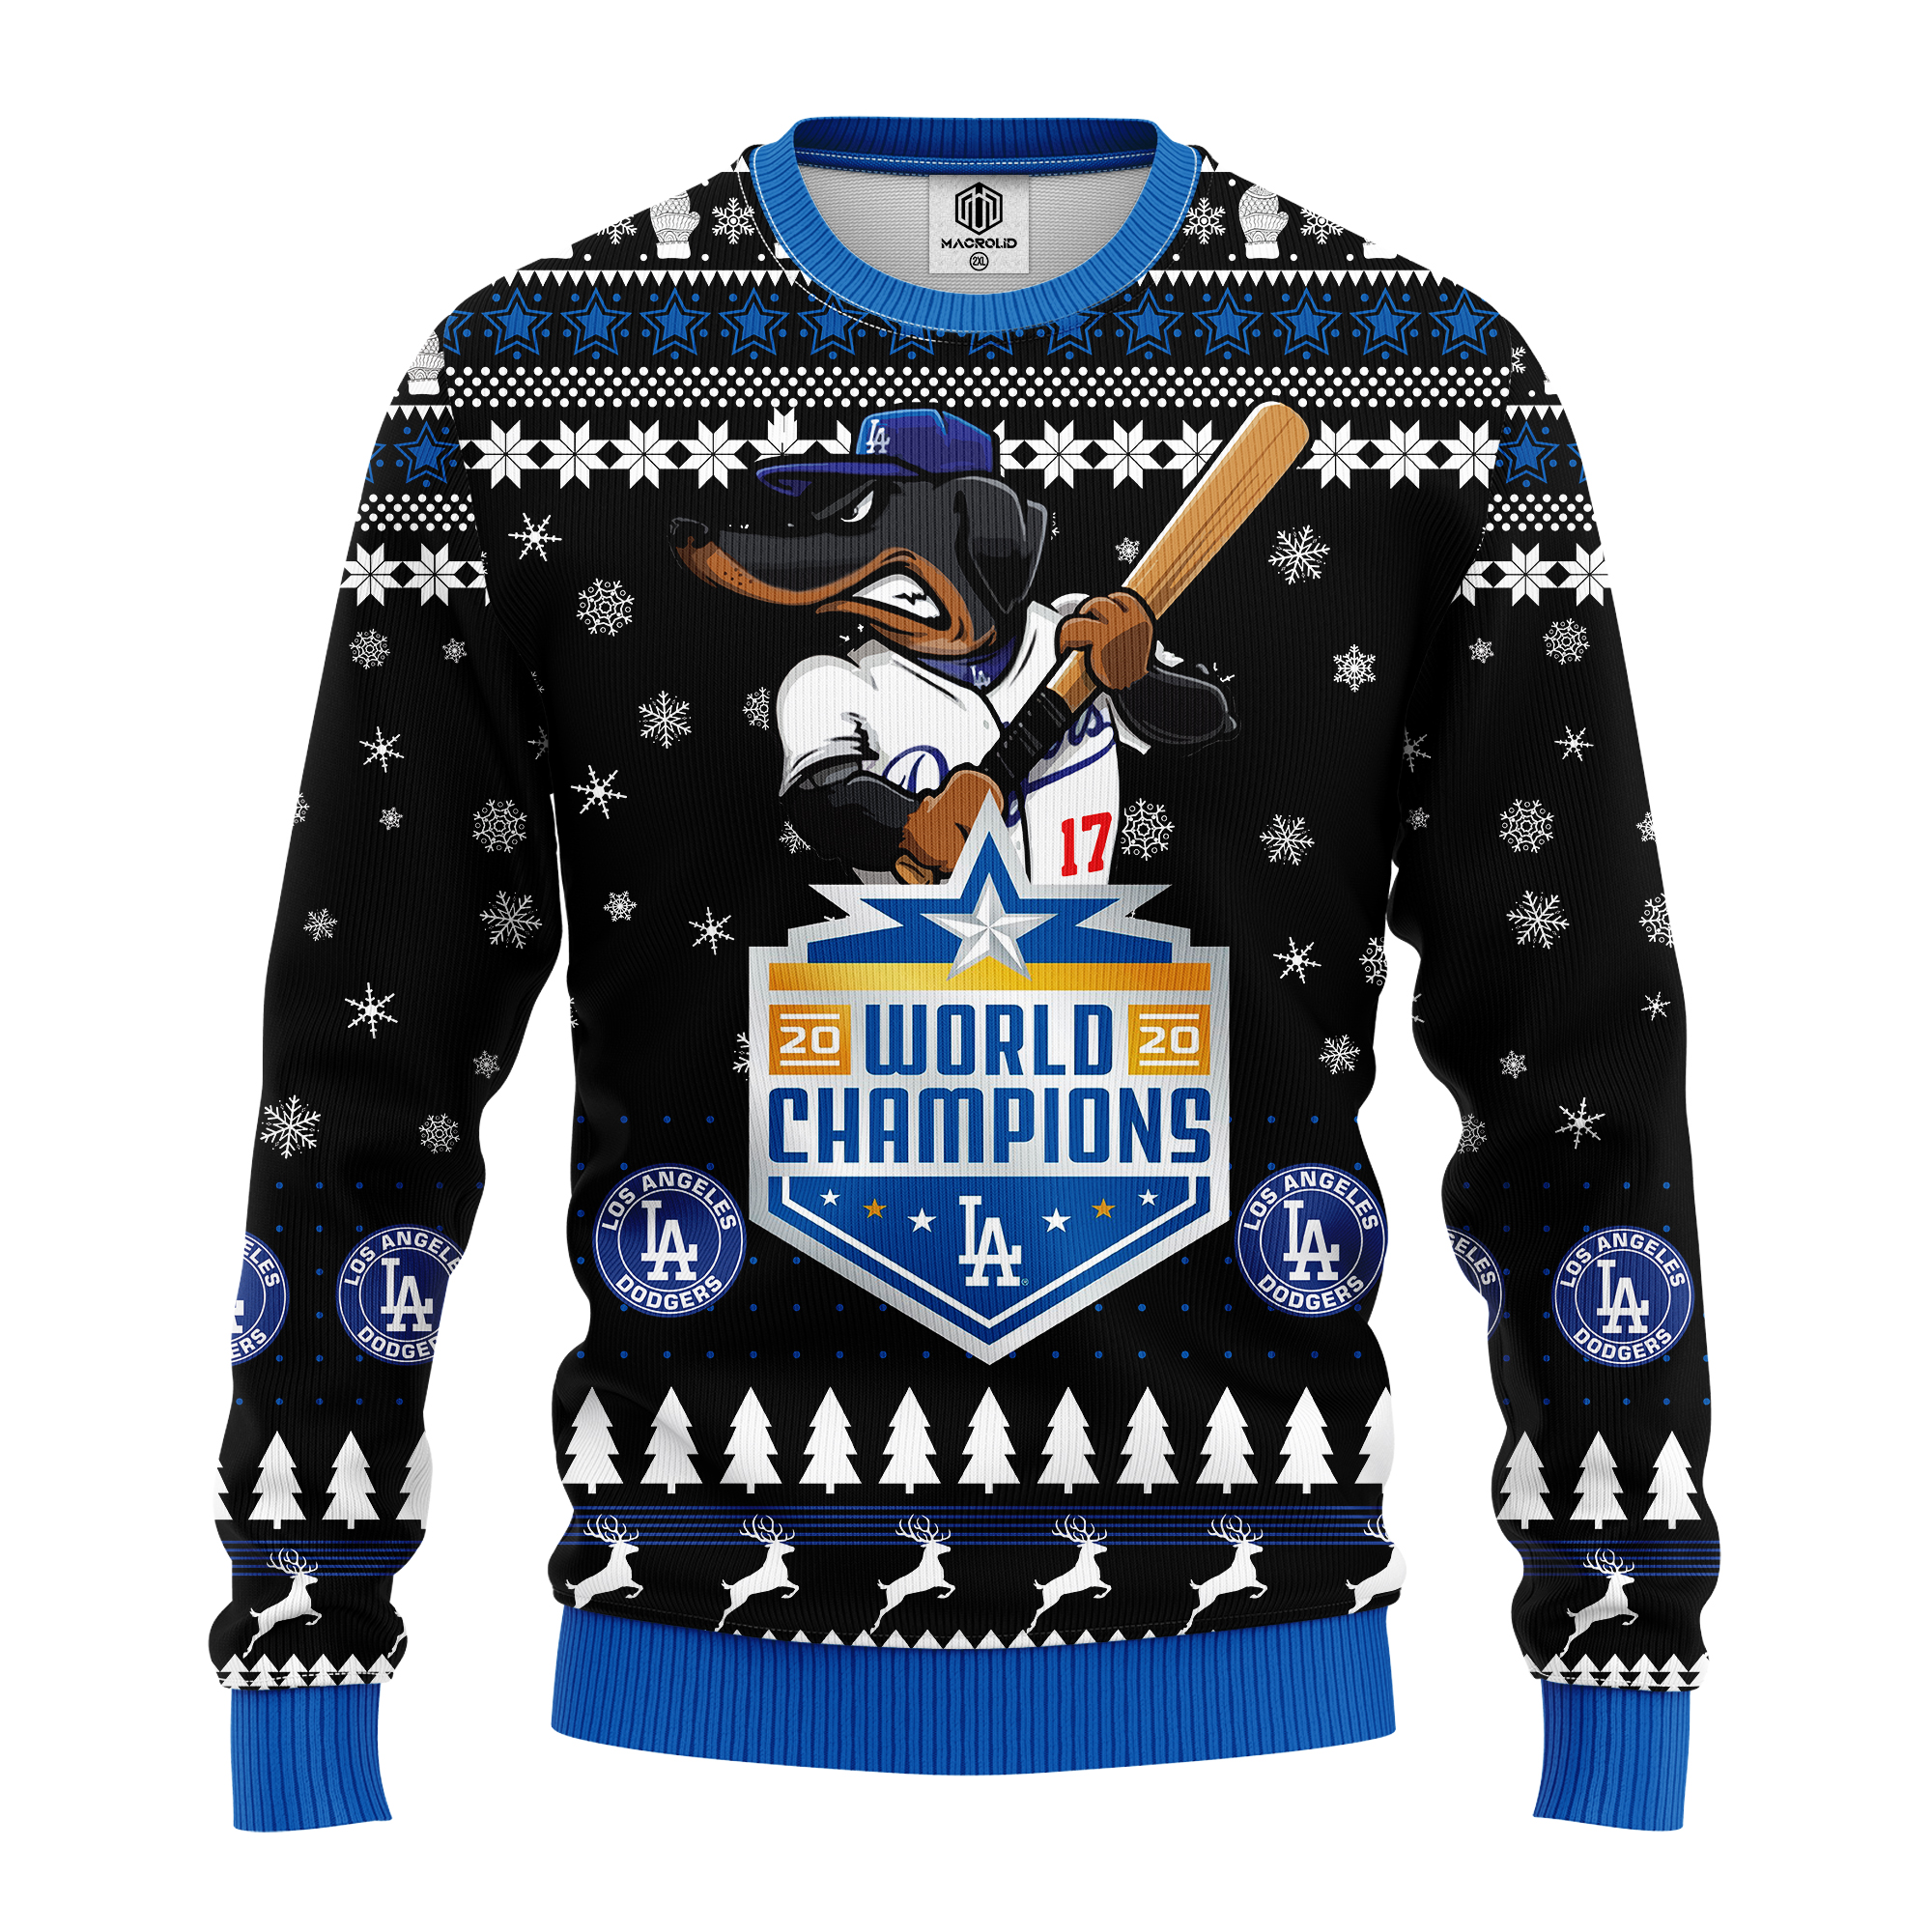 los angeles dodgers world champions 2020 all over printed ugly christmas sweater 2